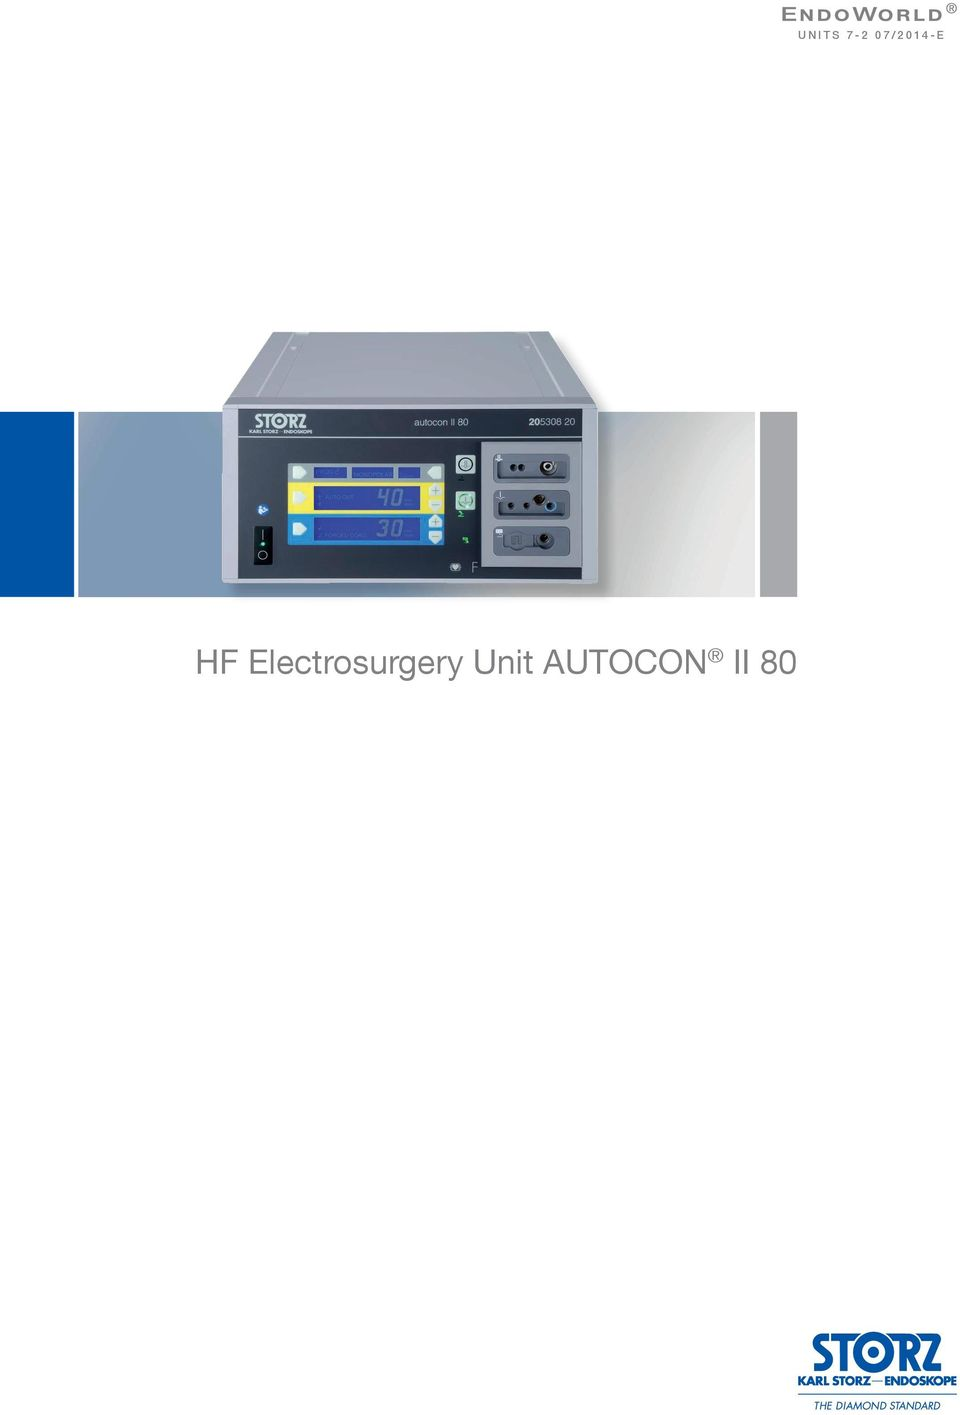 2 HF Electrosurgery Unit AUTOCON II 80 The AUTOCON II 80 is a compact and  high-performance HF electrosurgical unit which features a very attractive  ...